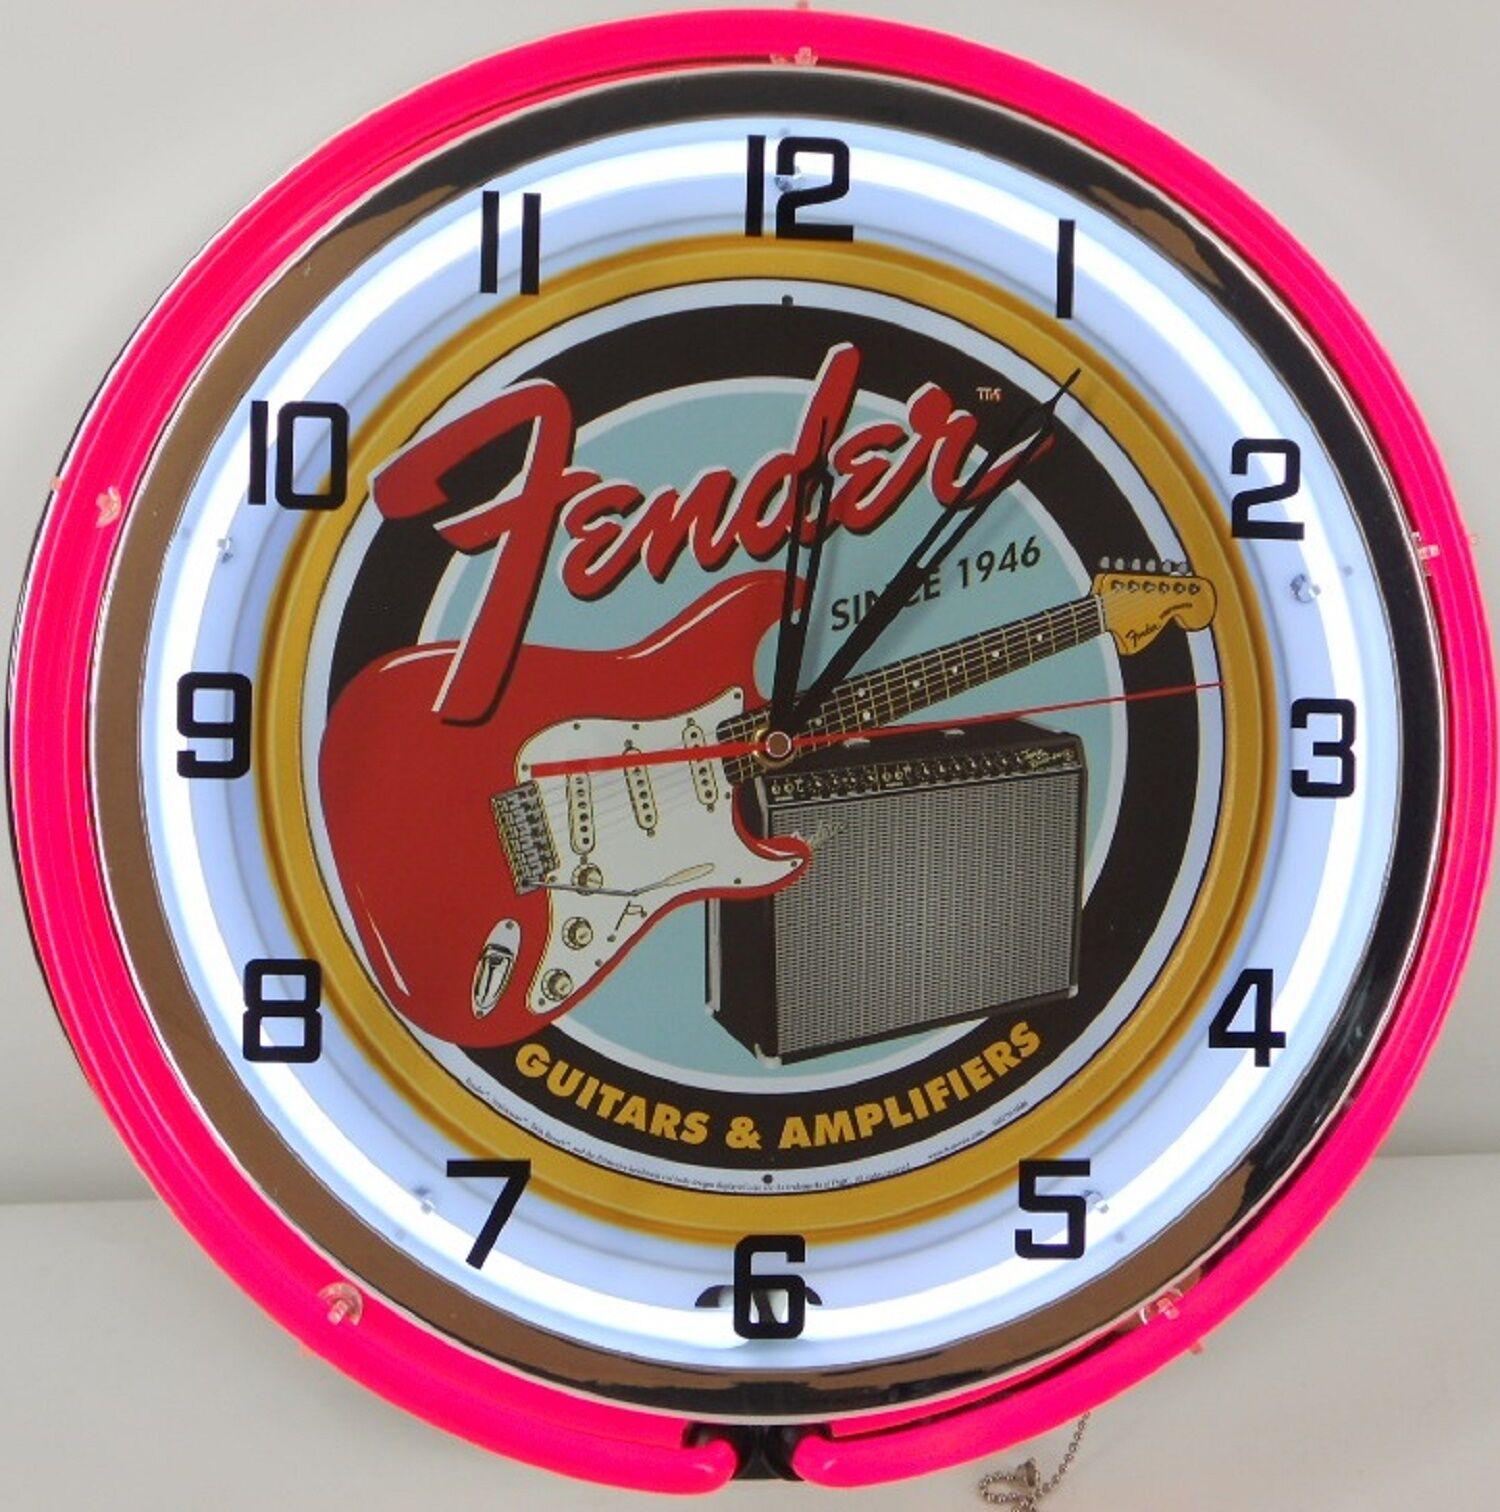 18 vintage fender guitar metal sign dbl neon wall clock amplifier picture 1 of 2 amipublicfo Images